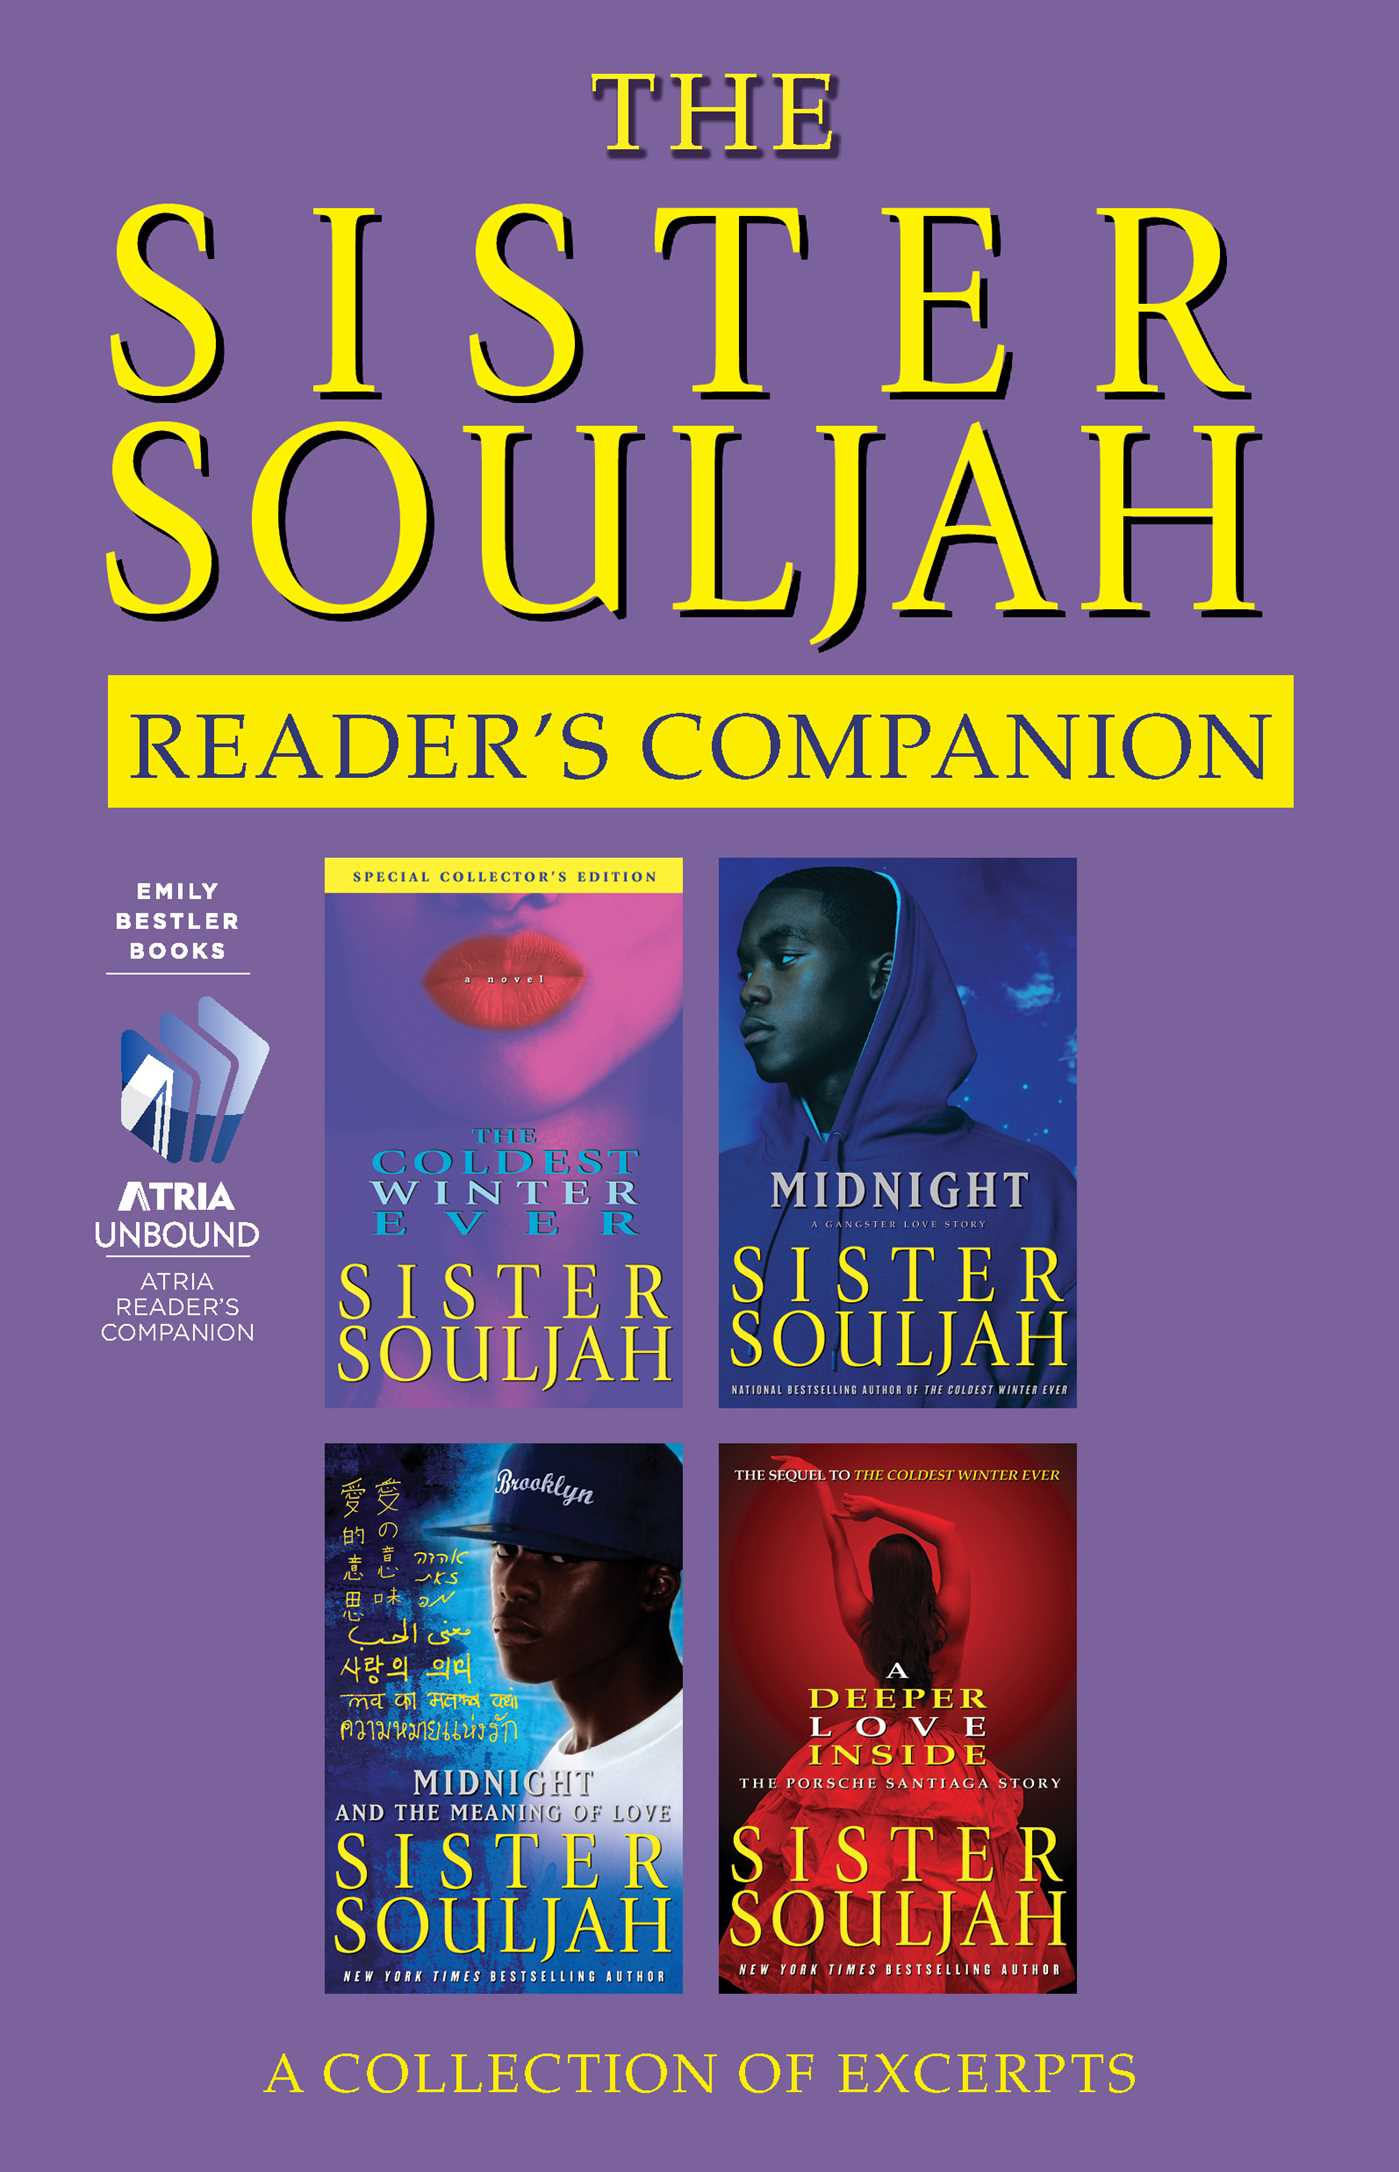 The sister souljah collection 1 ebook by sister souljah official the sister souljah readers companion fandeluxe Image collections